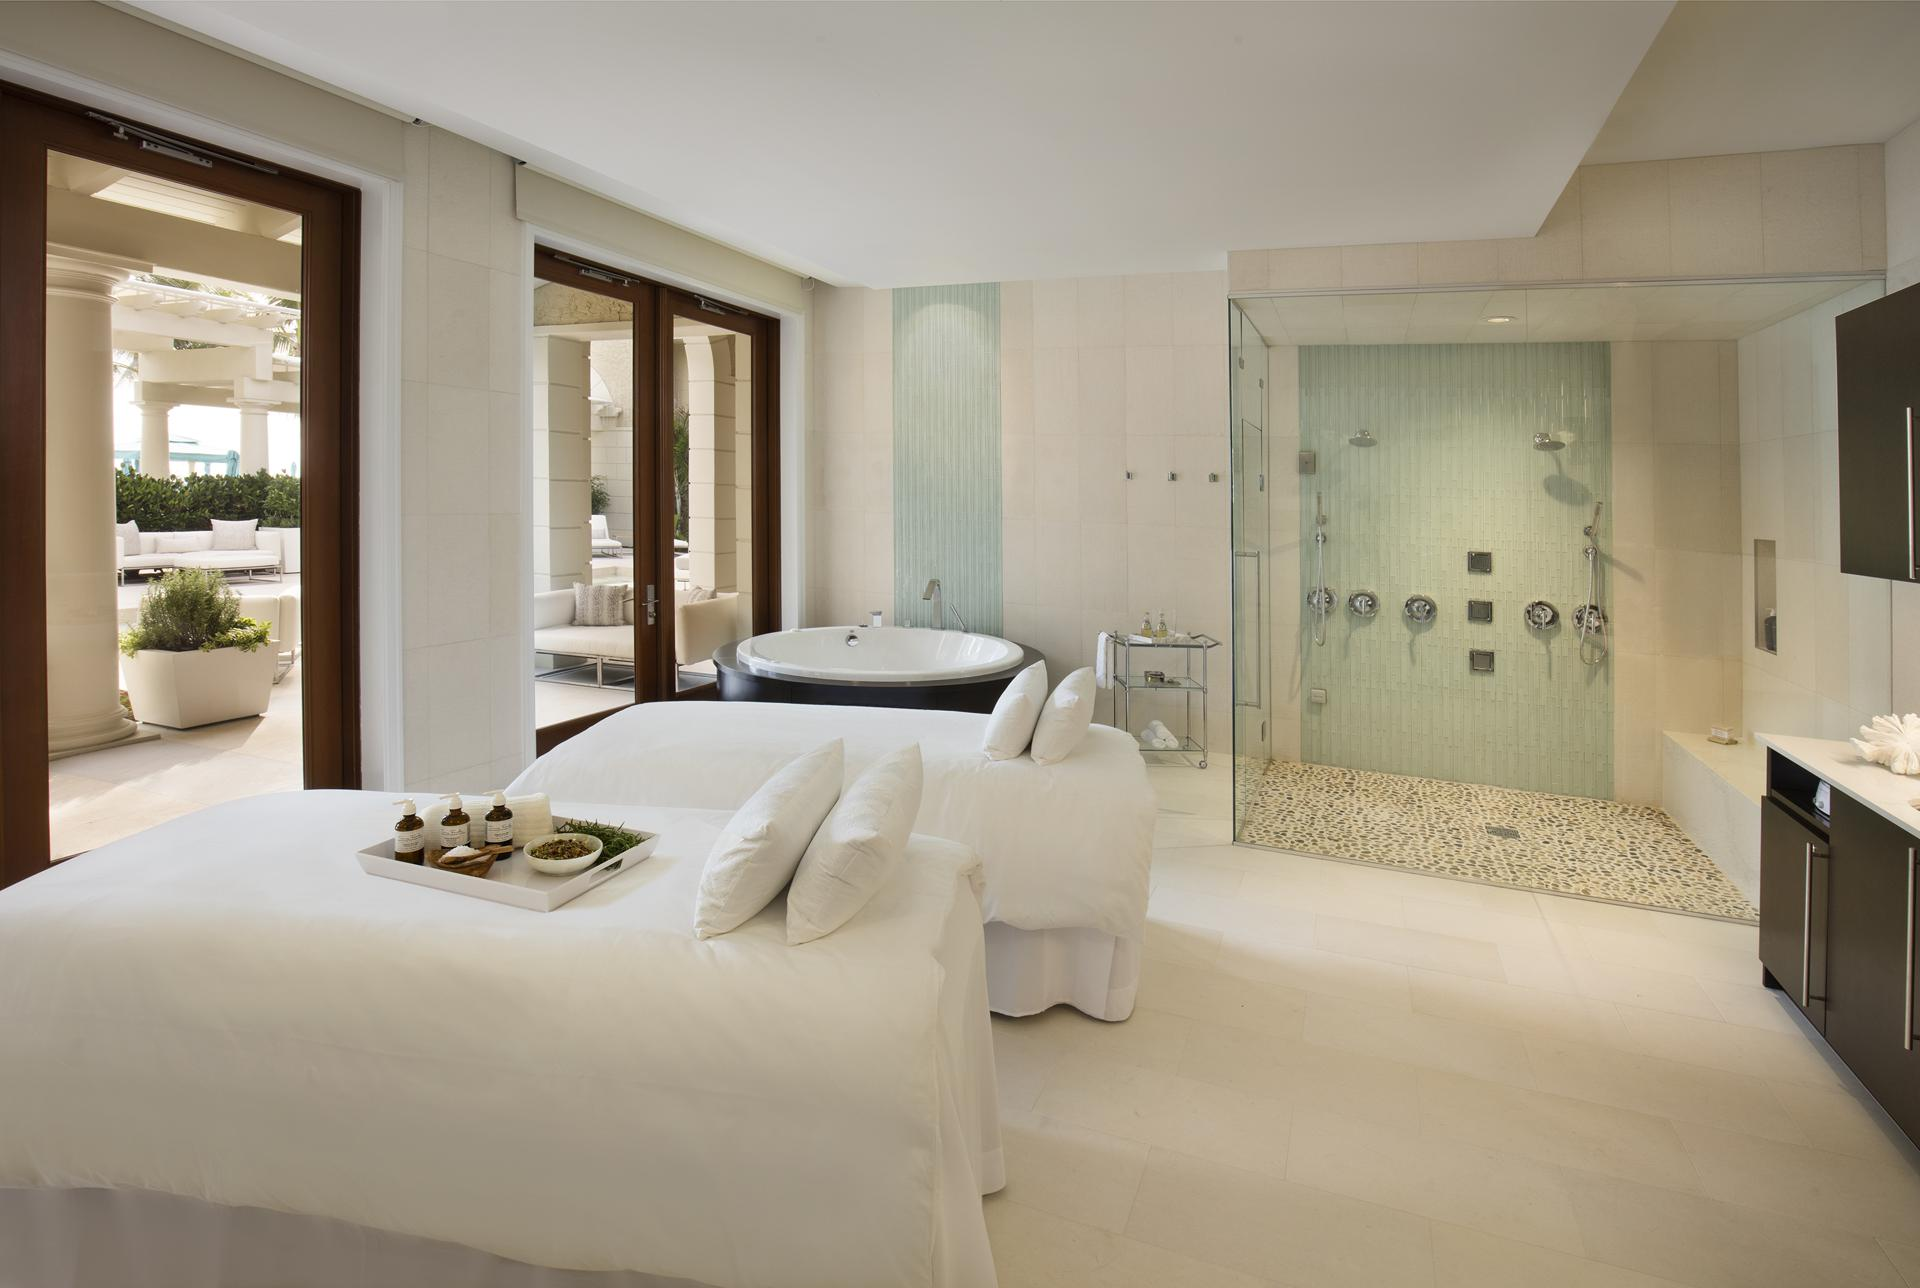 The Spa at The Breakers Palm Beach offers a slew of exfoliating and cleansing treatments, from marine algae body wraps to a rose quartz massage.